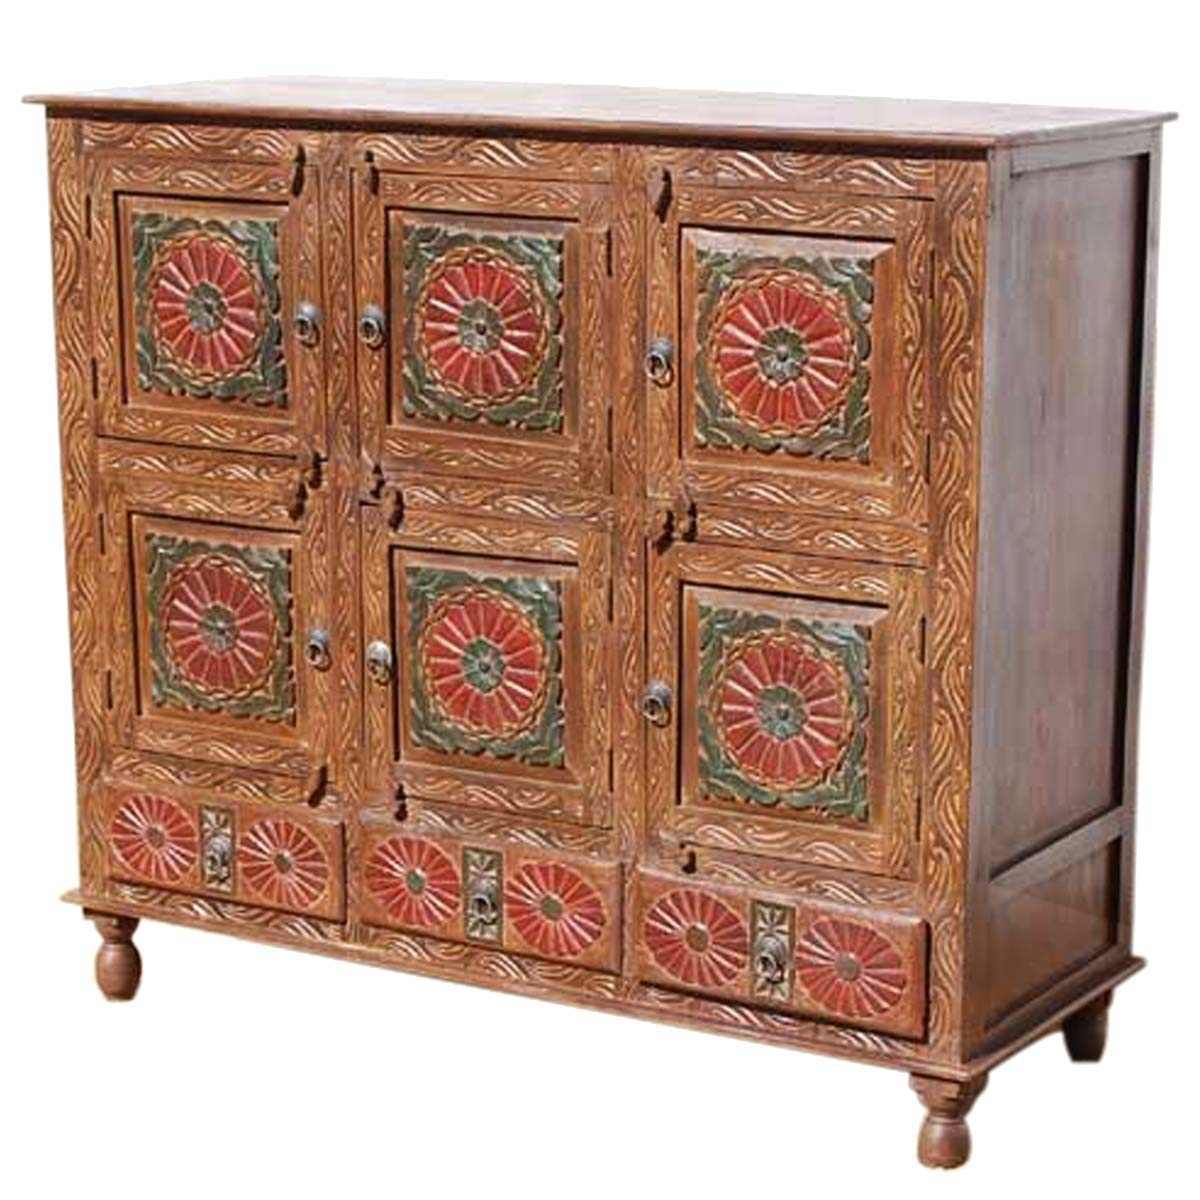 Chicago Red Poppy Handcarved 9 Compartment 3 Drawer Sideboard regarding Starburst 3 Door Sideboards (Image 6 of 30)